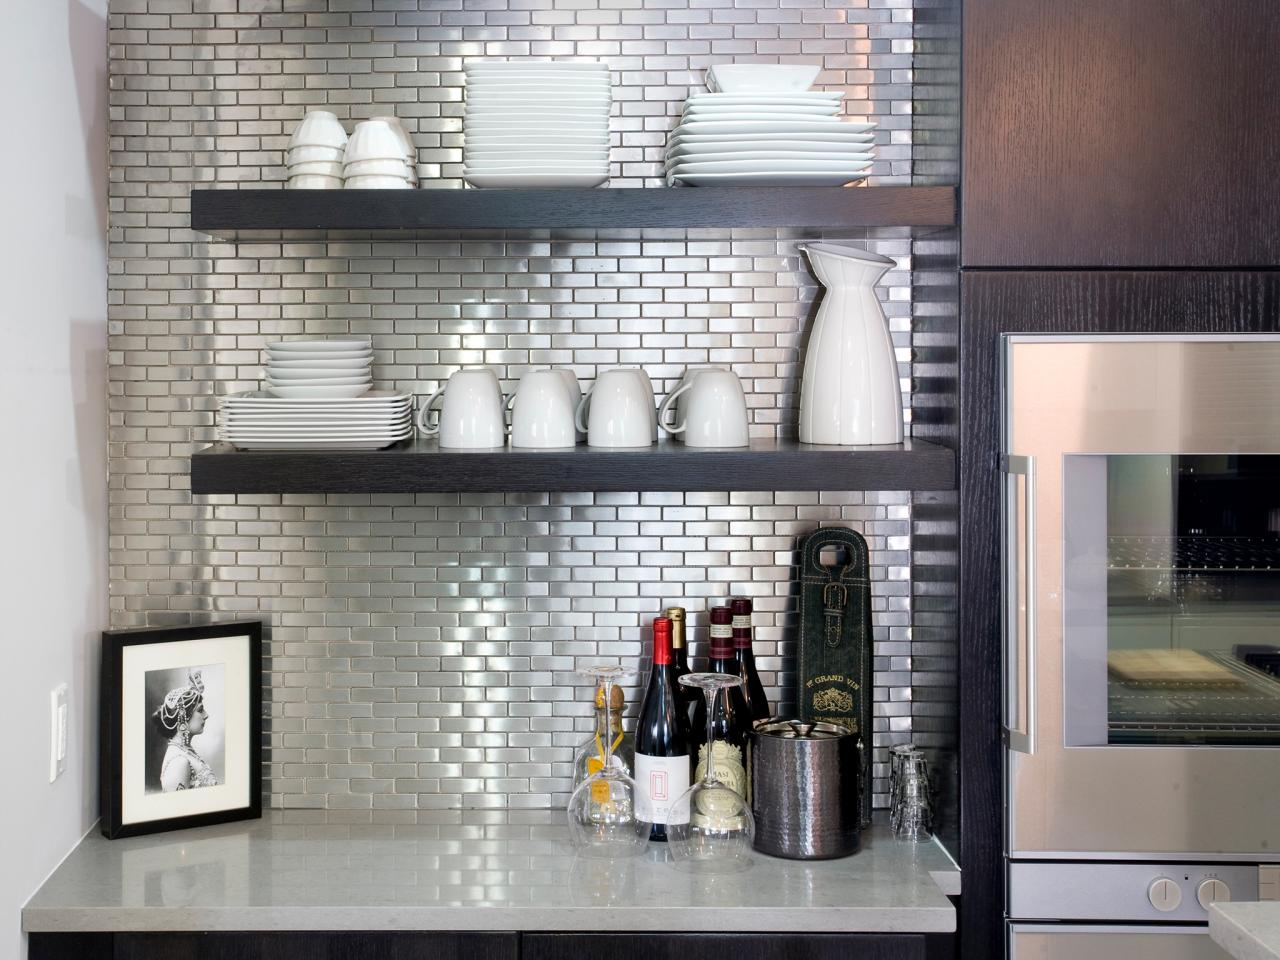 Stainless-Steel-Tile-Backsplash HGTV